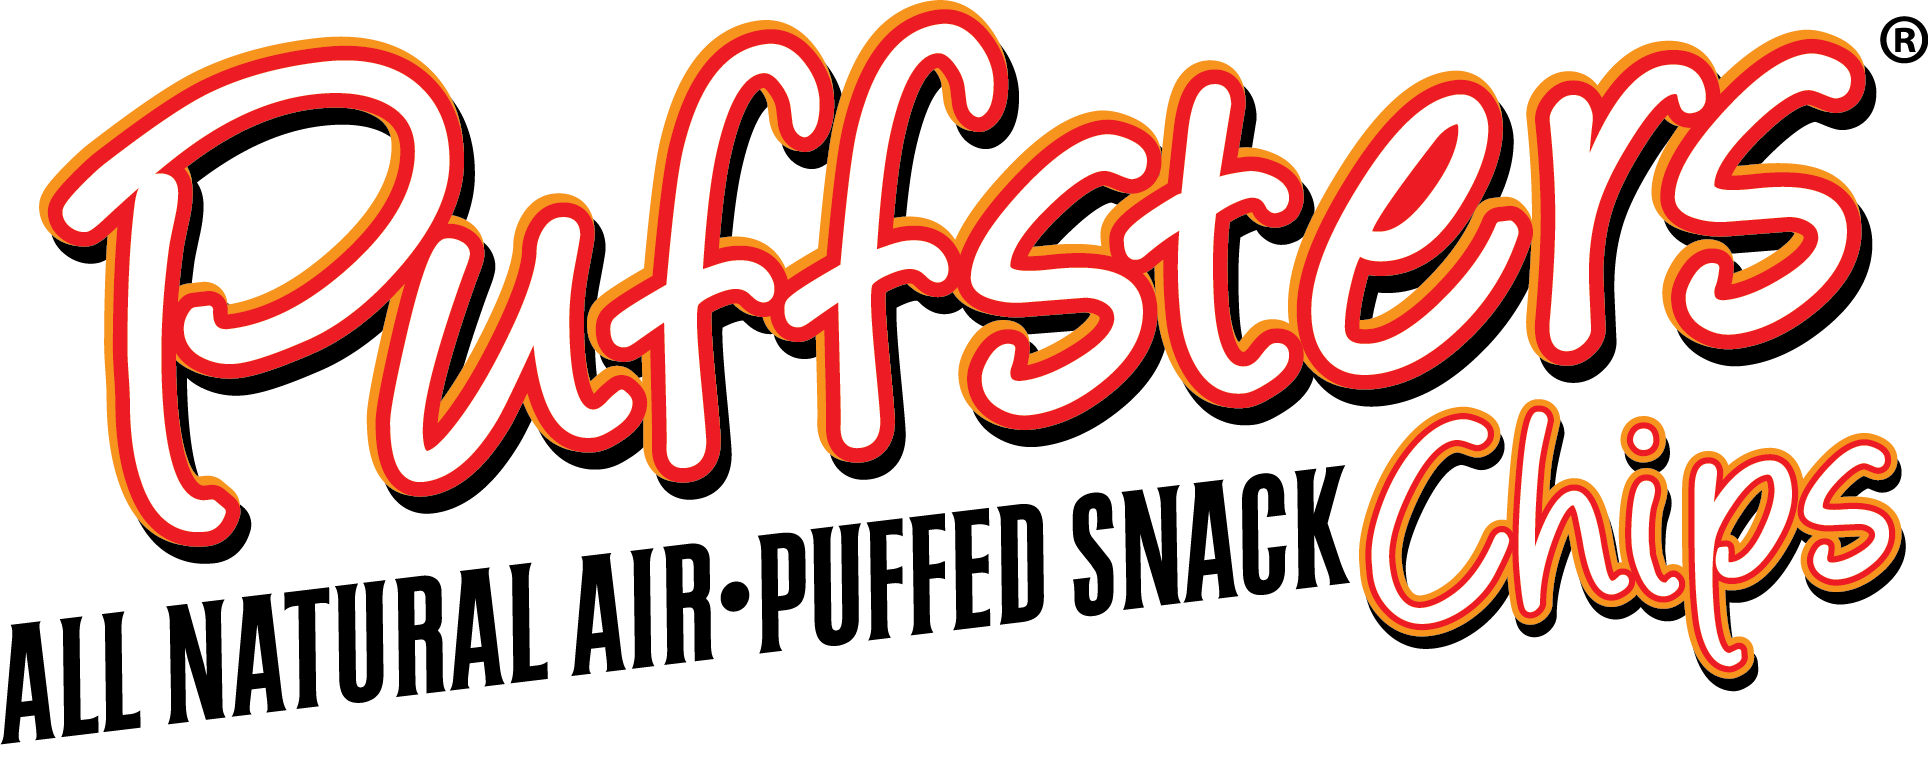 Puffsters Logo Image